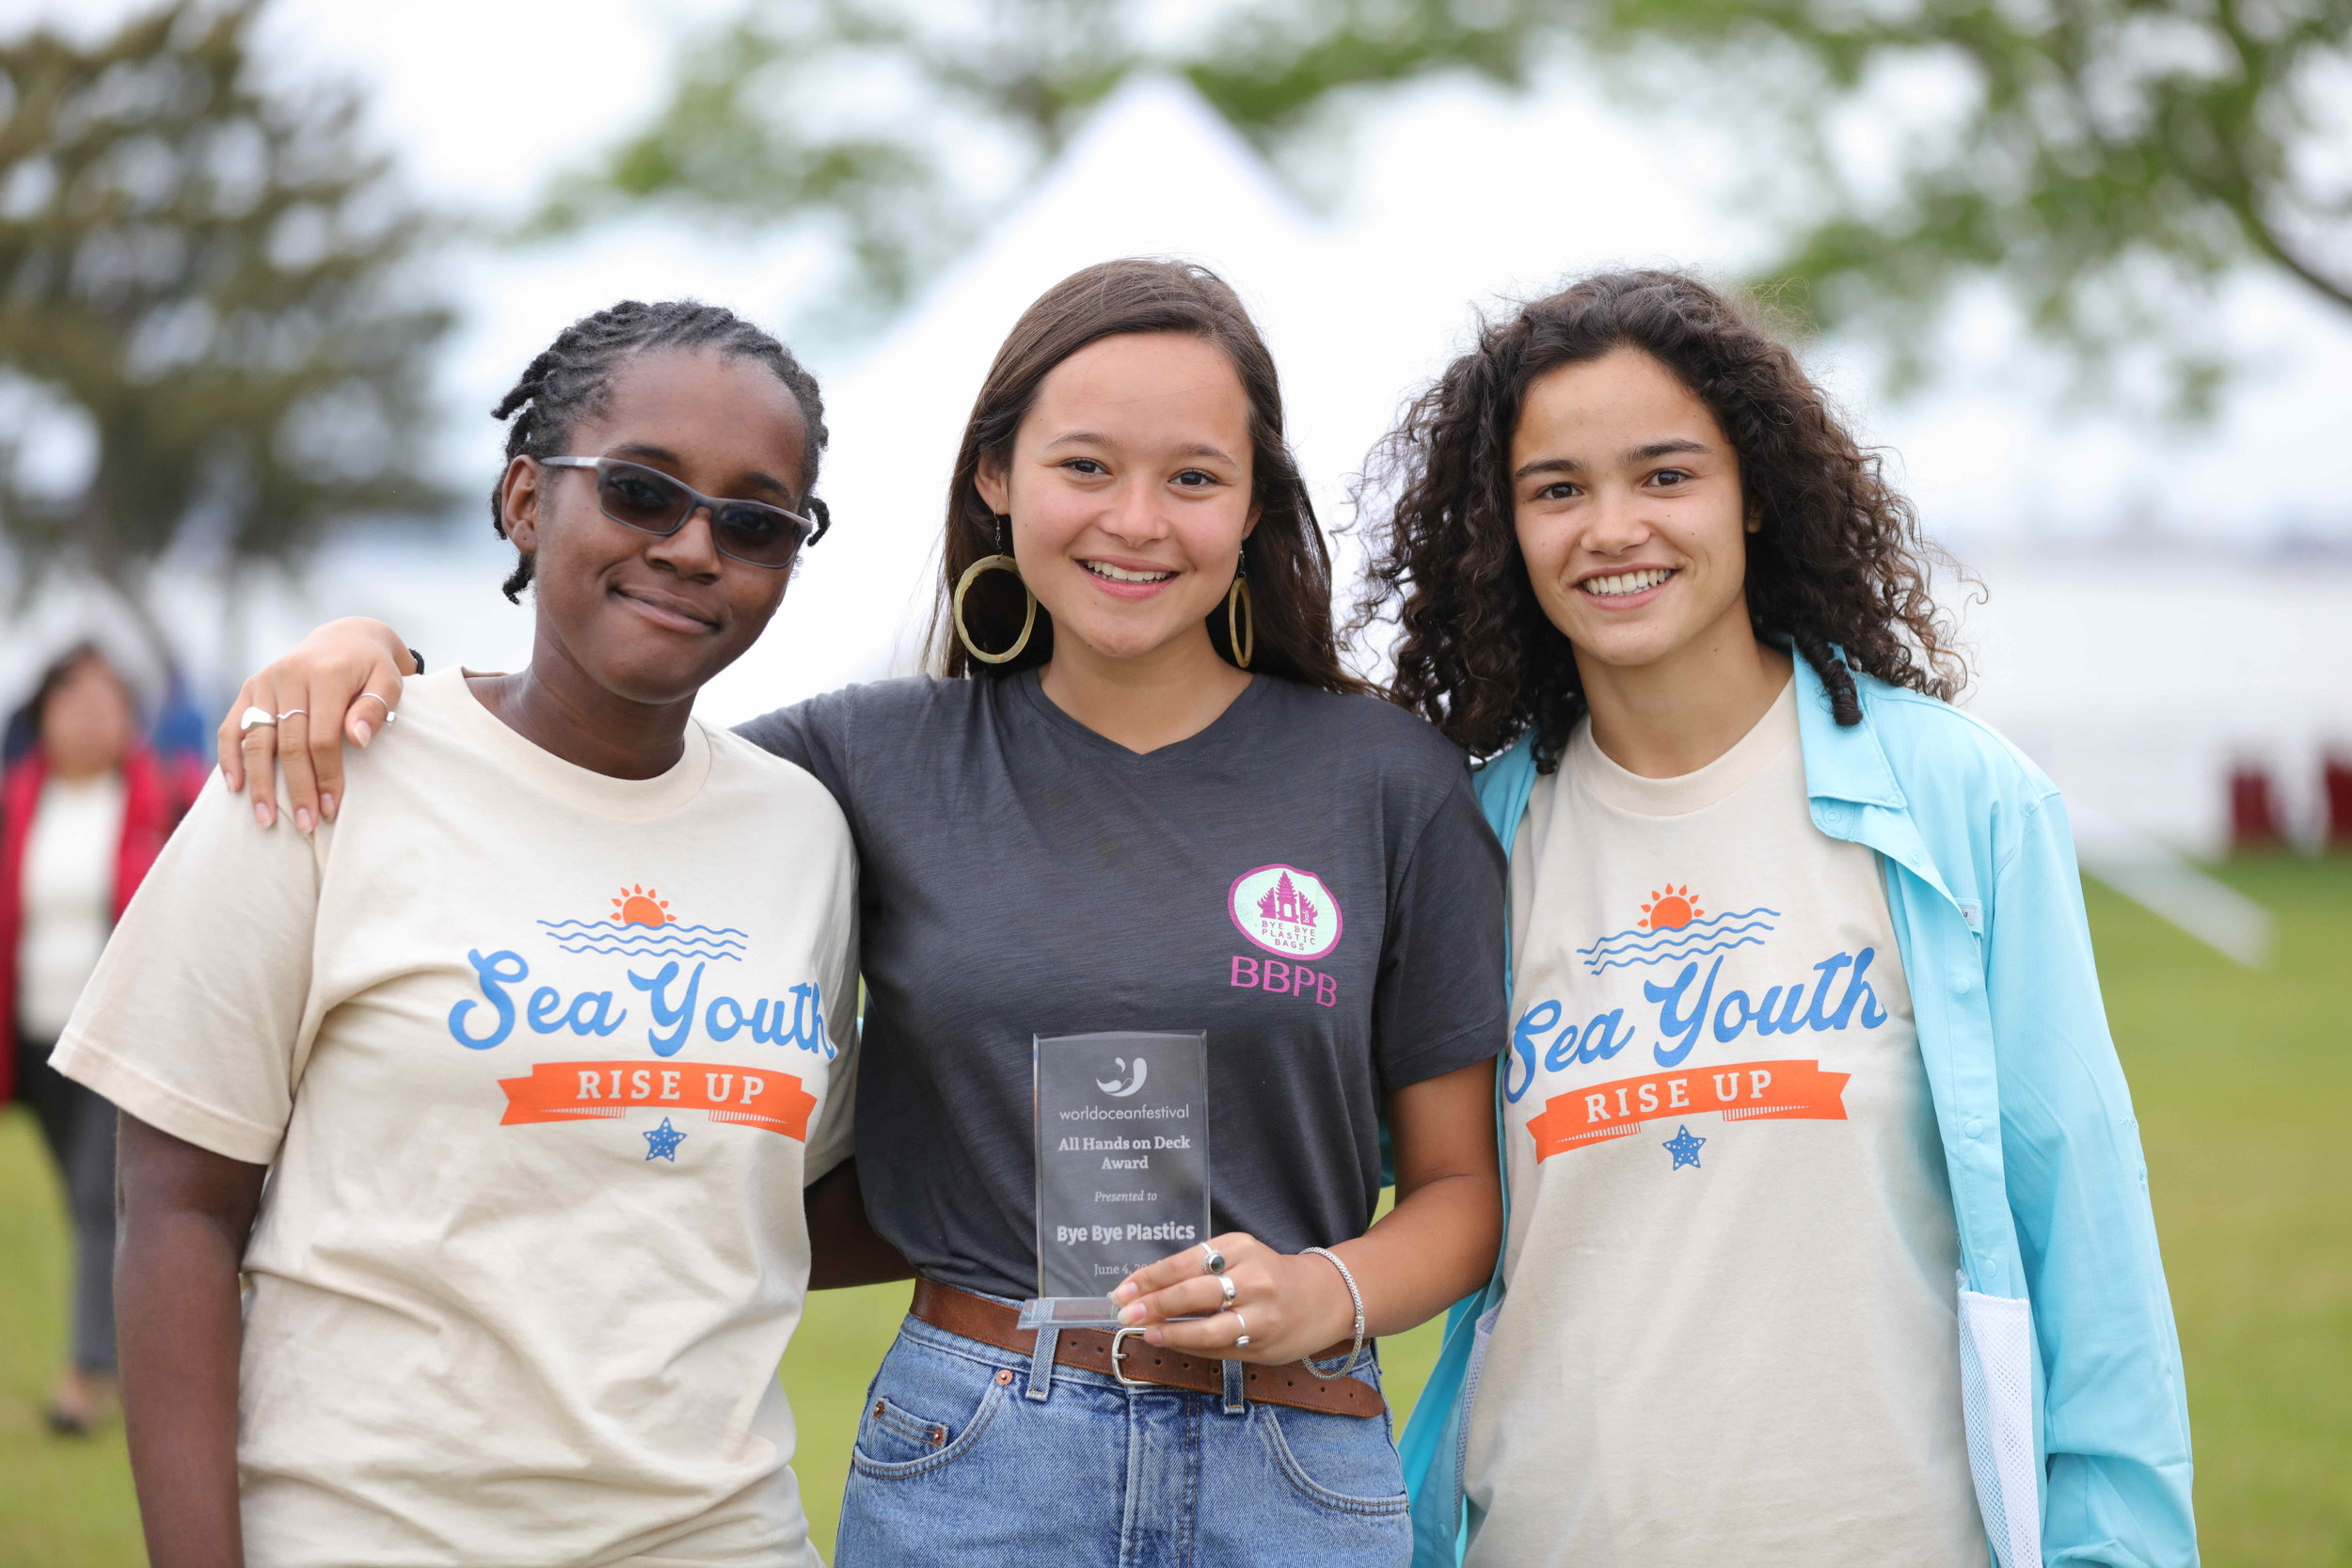 Sea Youth Rise Up International Delegates (from left to right) La Tisha Parkinson (Trinidad & Tobago), Melati Wijsen (Indonesia) and Eugenia Barroca (Portugal) Photo Credit: J. Alexander Clark